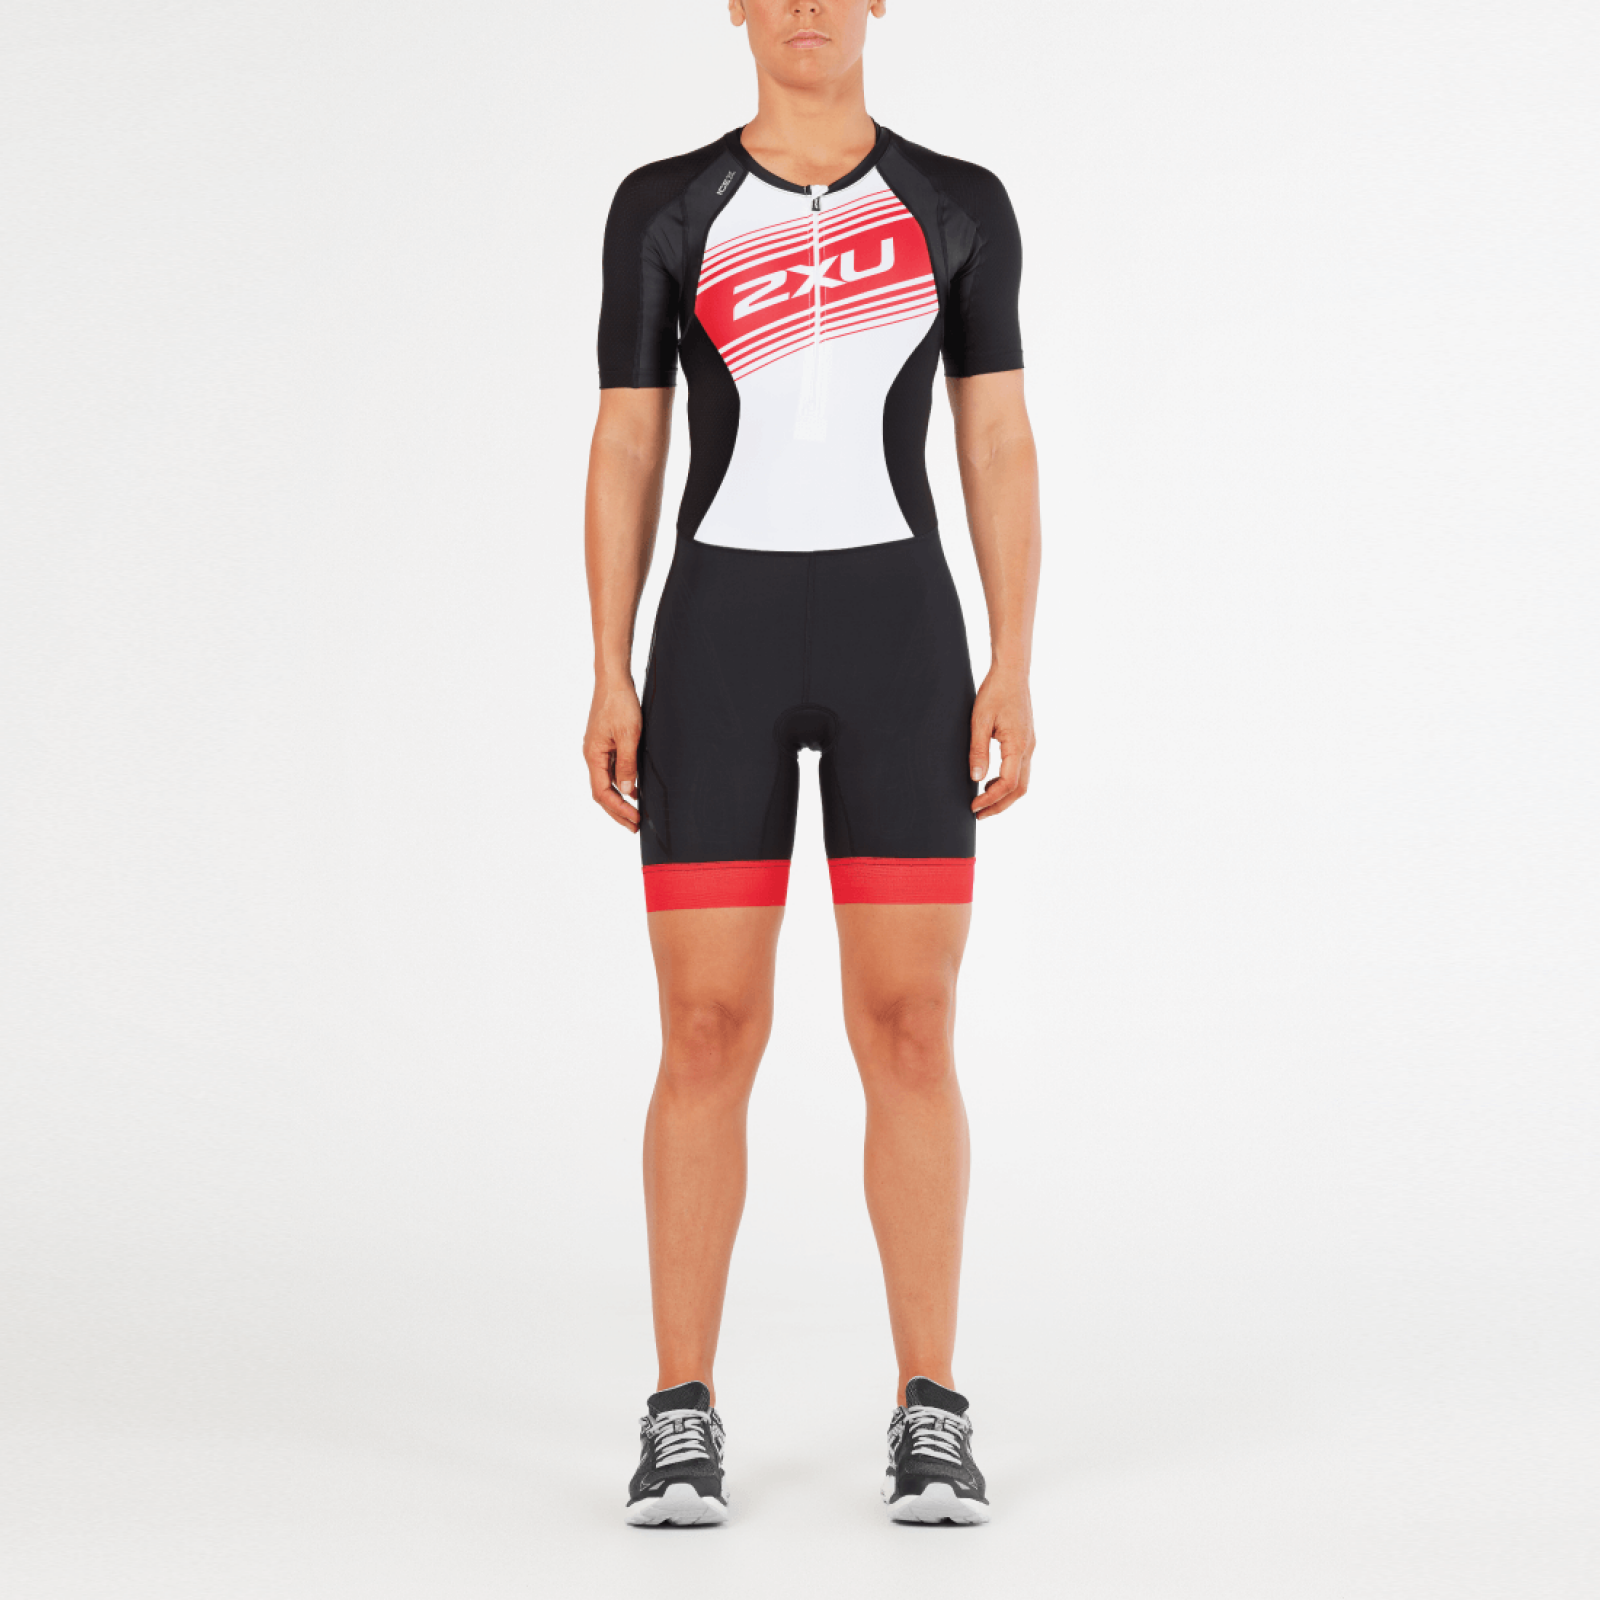 2XU Women Compression Sleeved Trisuit.